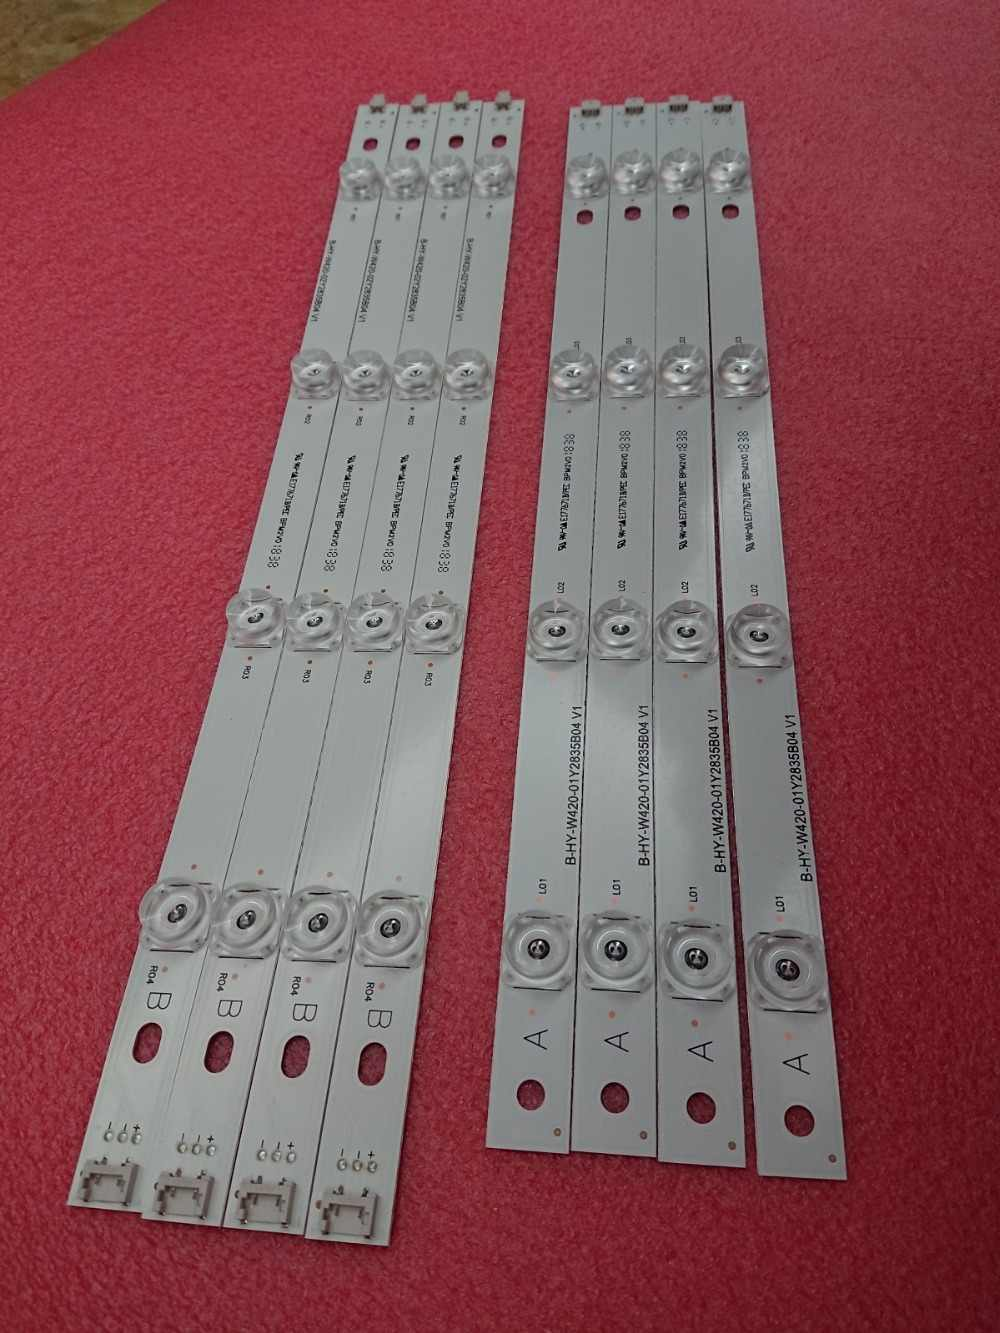 Baru Kit 8 Pcs LED Strip Pengganti LG LC420DUE 42LB650V 42LF5500 Innotek DRT 3.0 42 Inch B 6916L-1957A 6916L-1956A